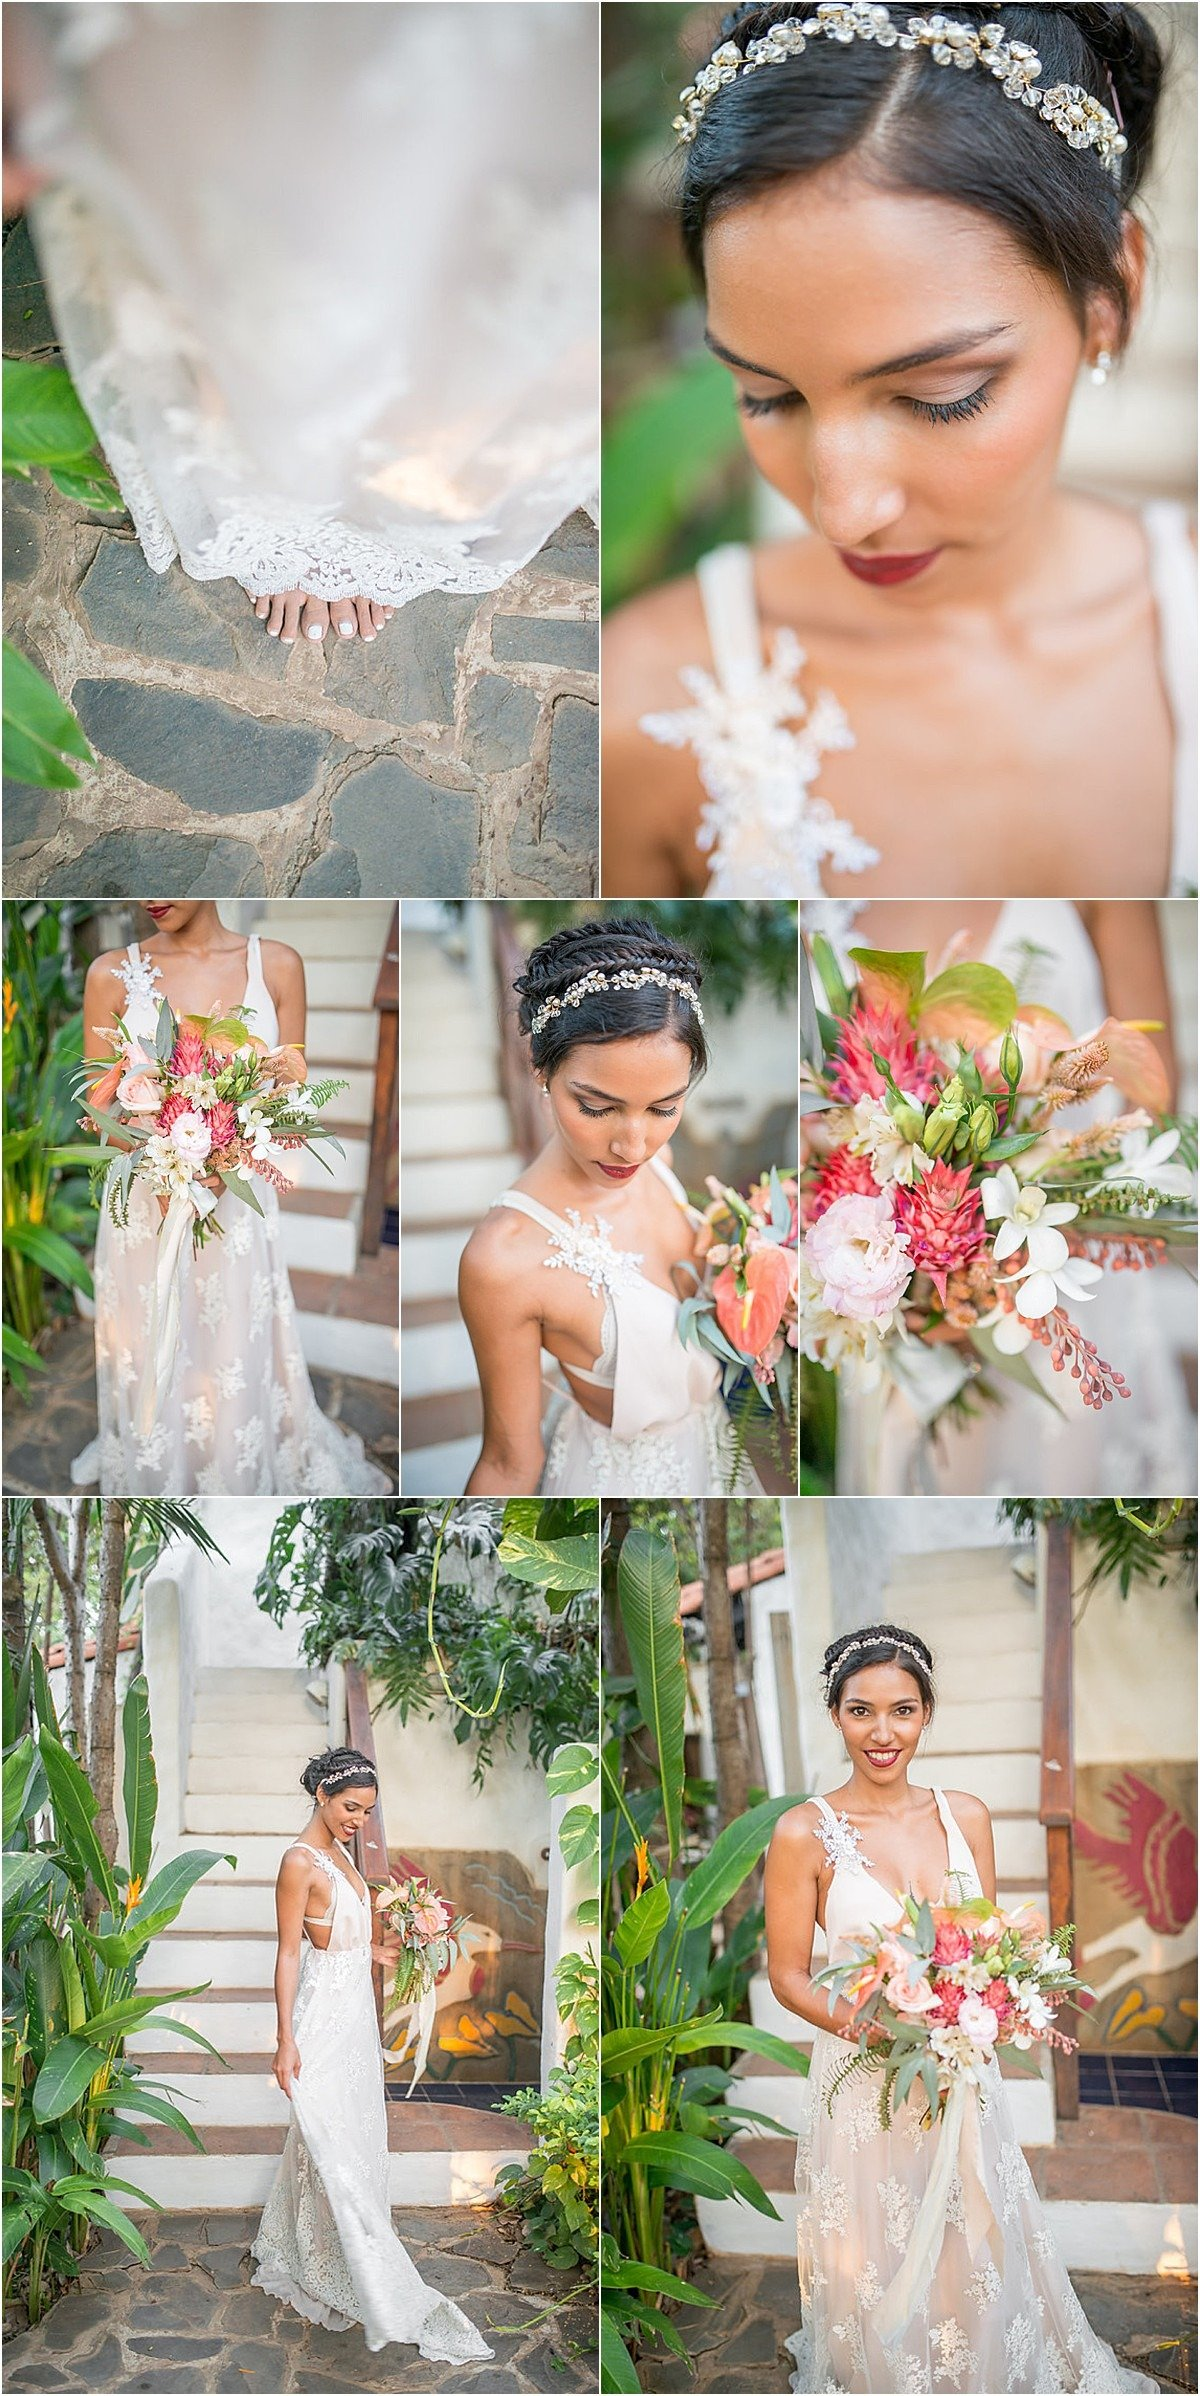 The florals were all native to Costa Rica and looked incredible juxtaposed against the green palm leaves everywhere.